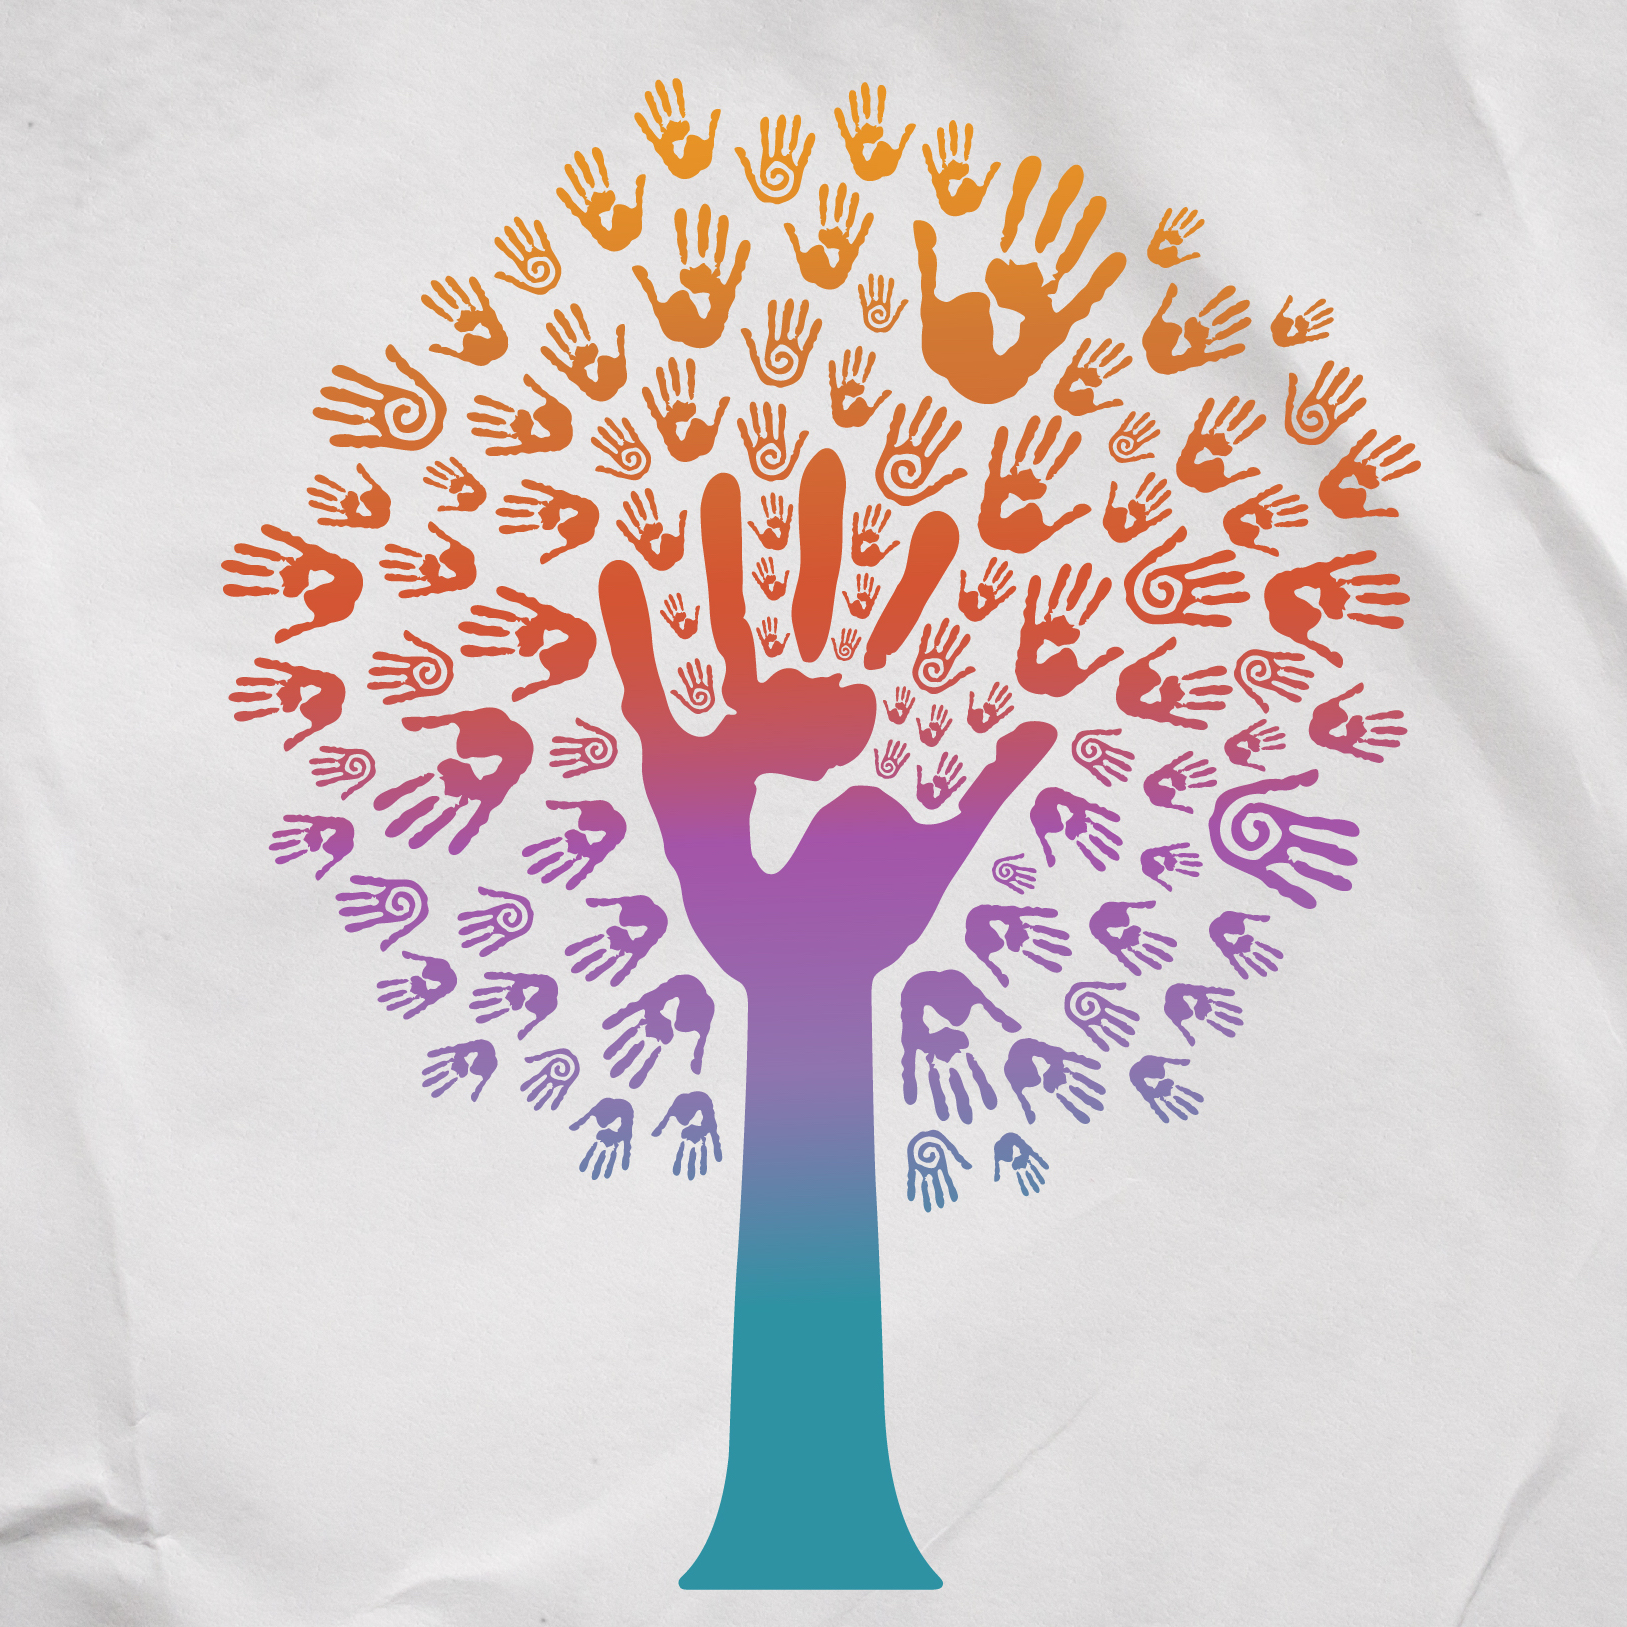 tree with multicolored hands as leaves